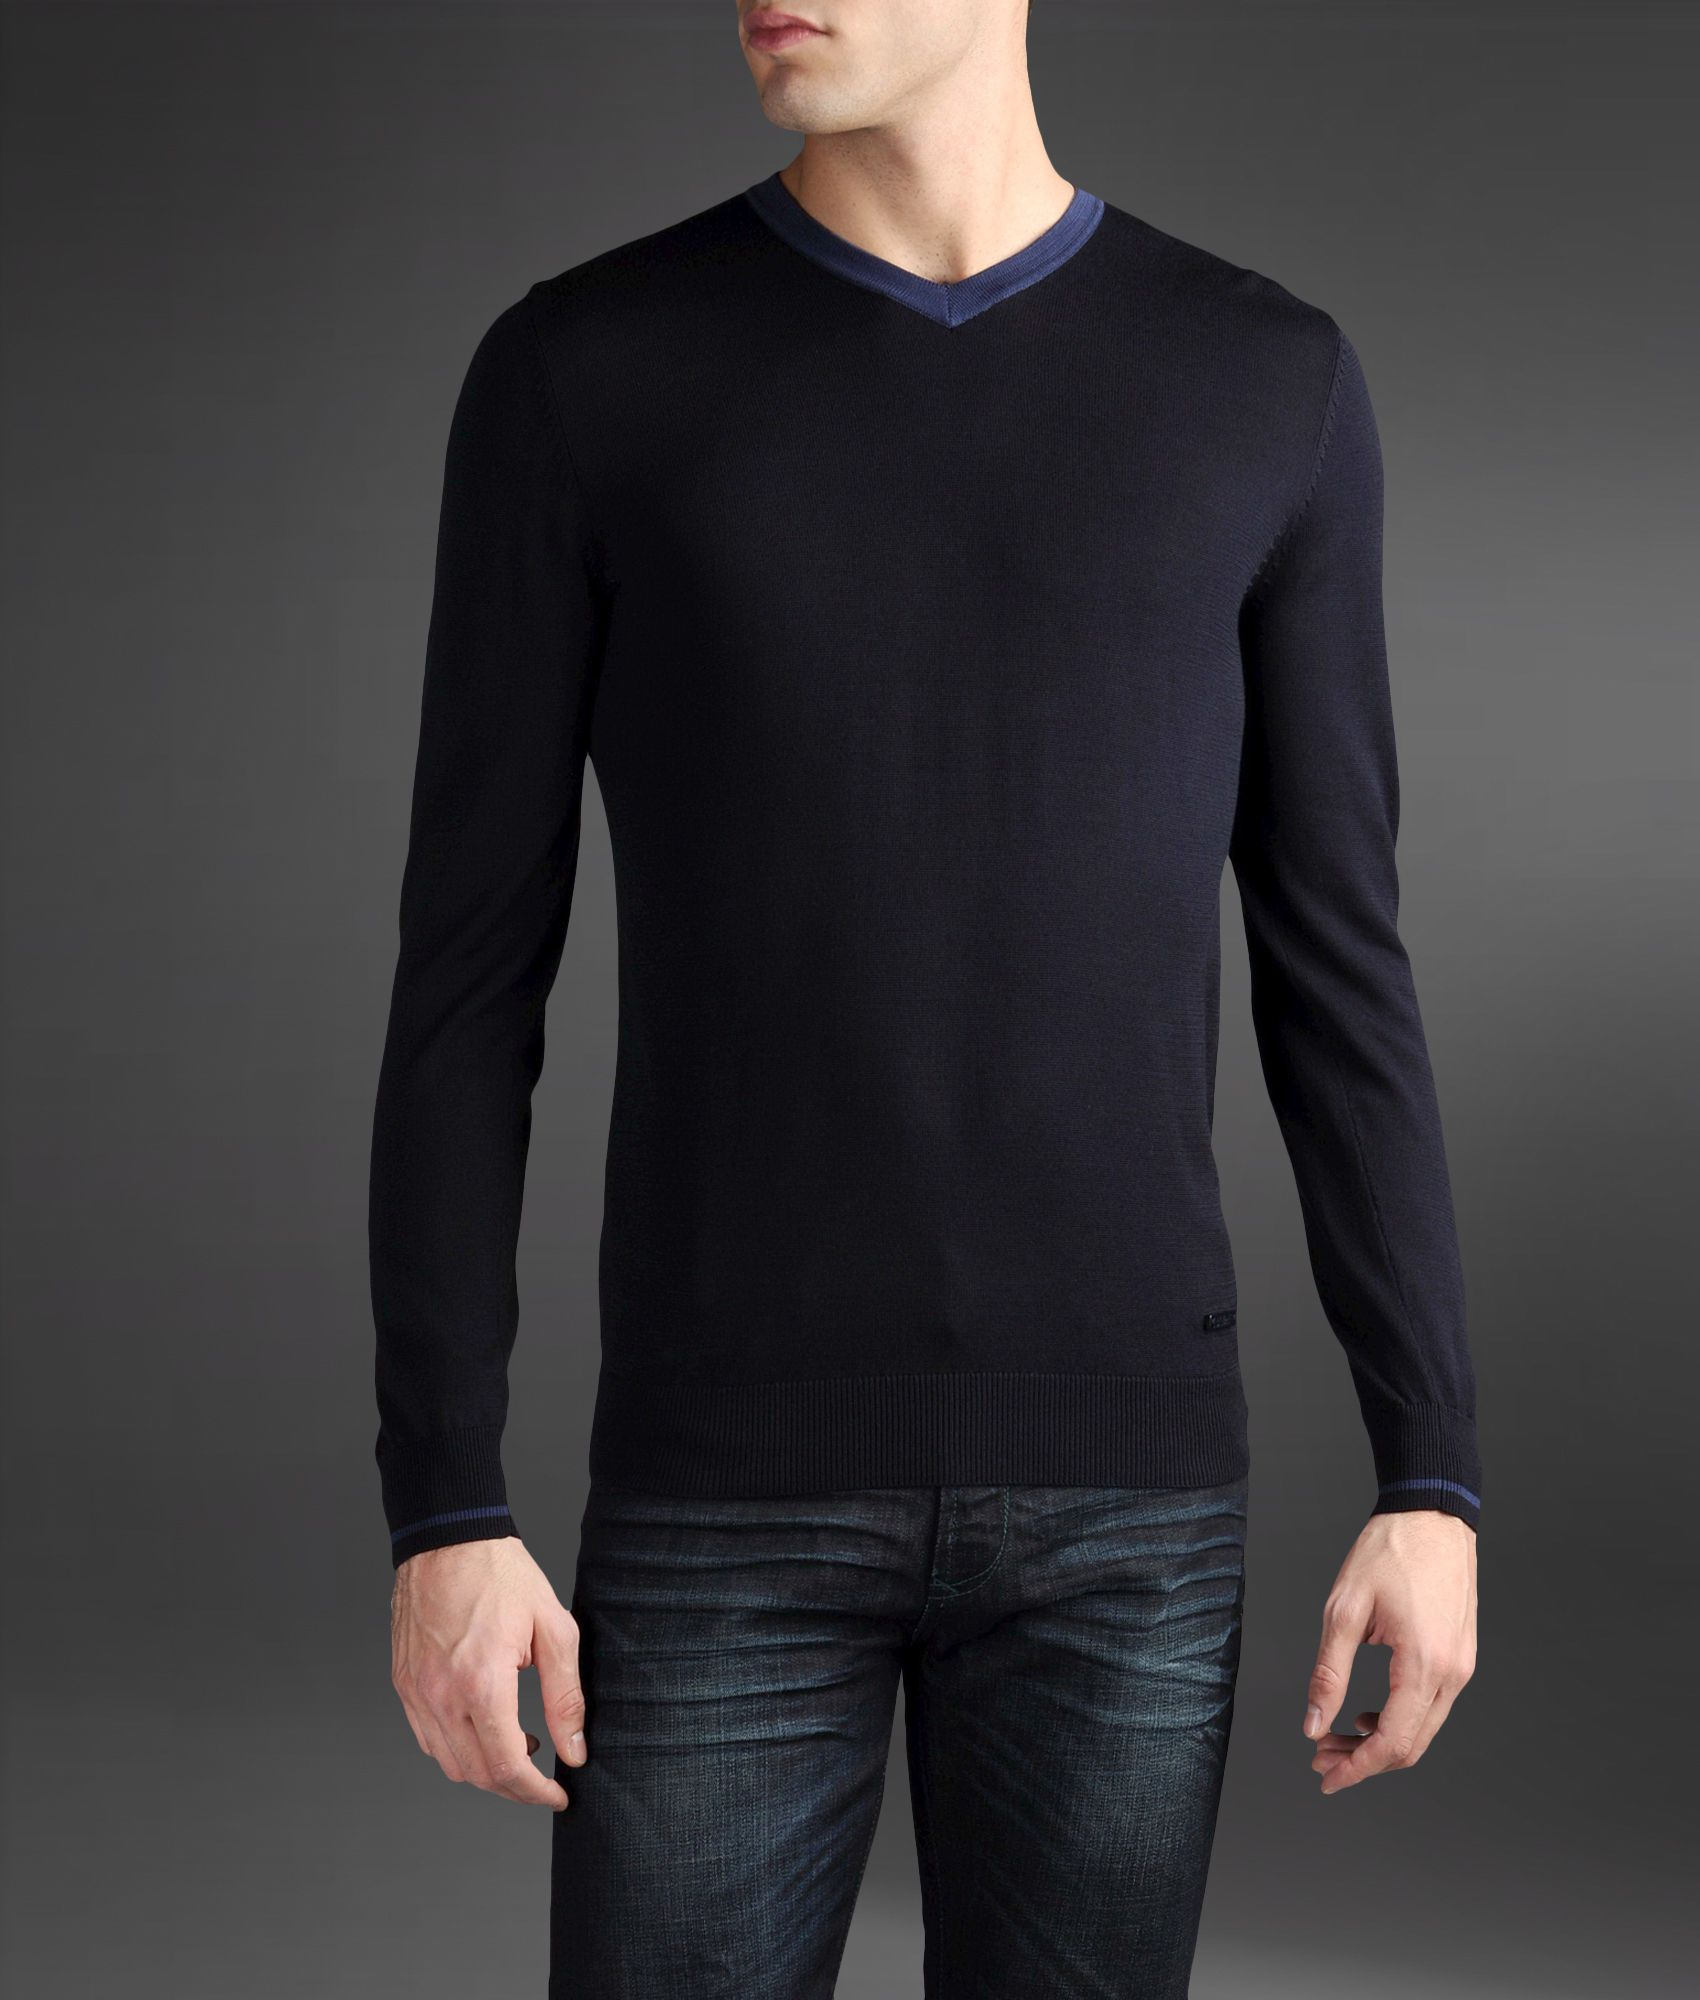 Armani Silk Cotton V Neck T Shirt In Blue For Men Dark